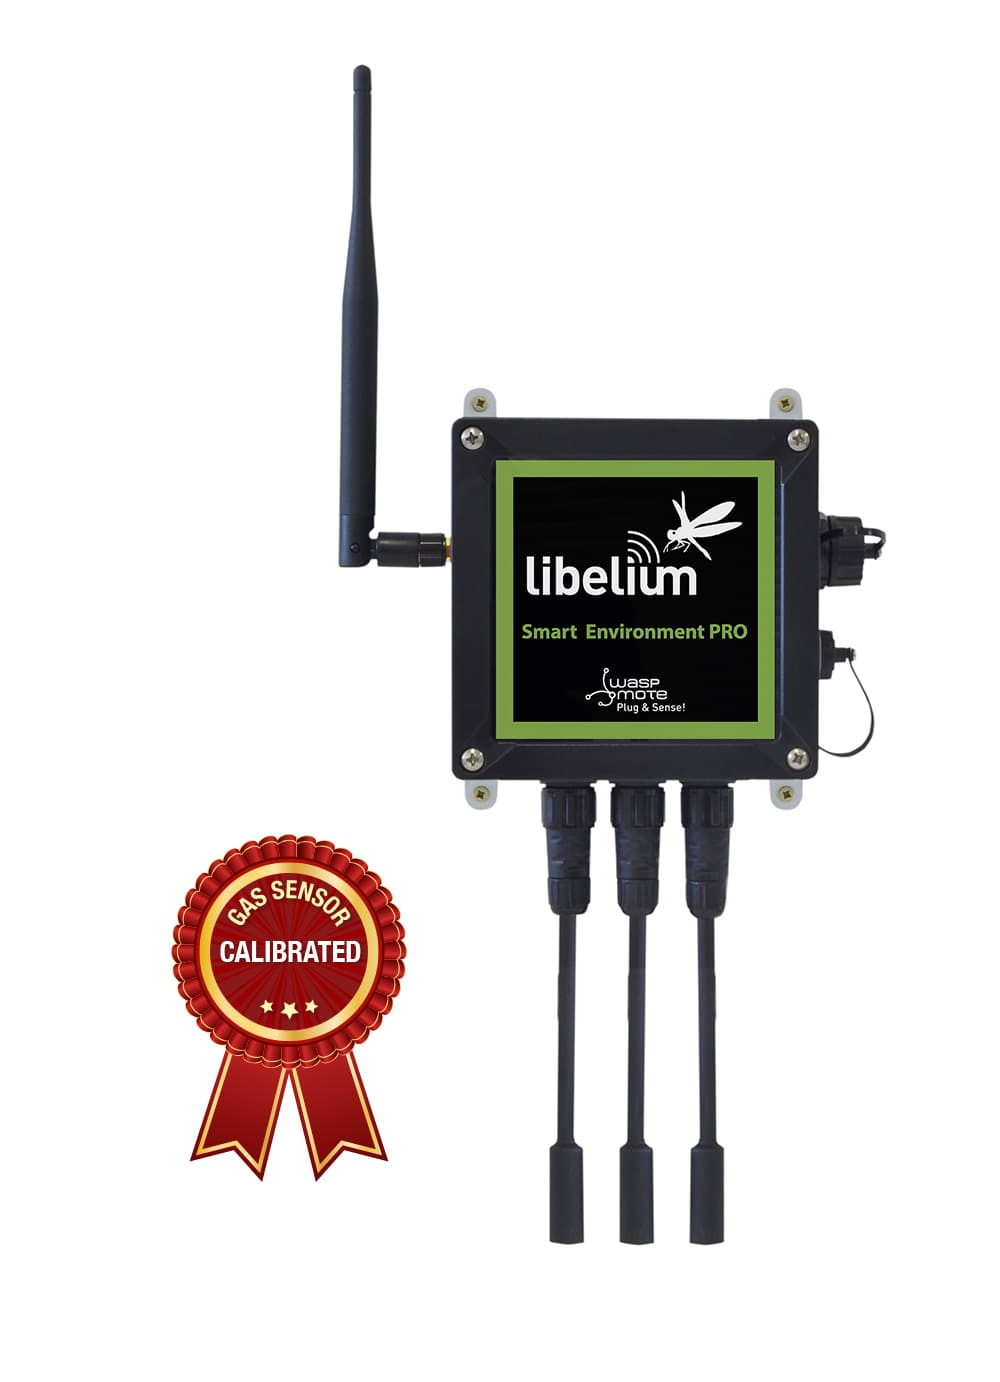 Libelium's new Smart Cities sensing solution, Plug & Sense! Smart Environment PRO